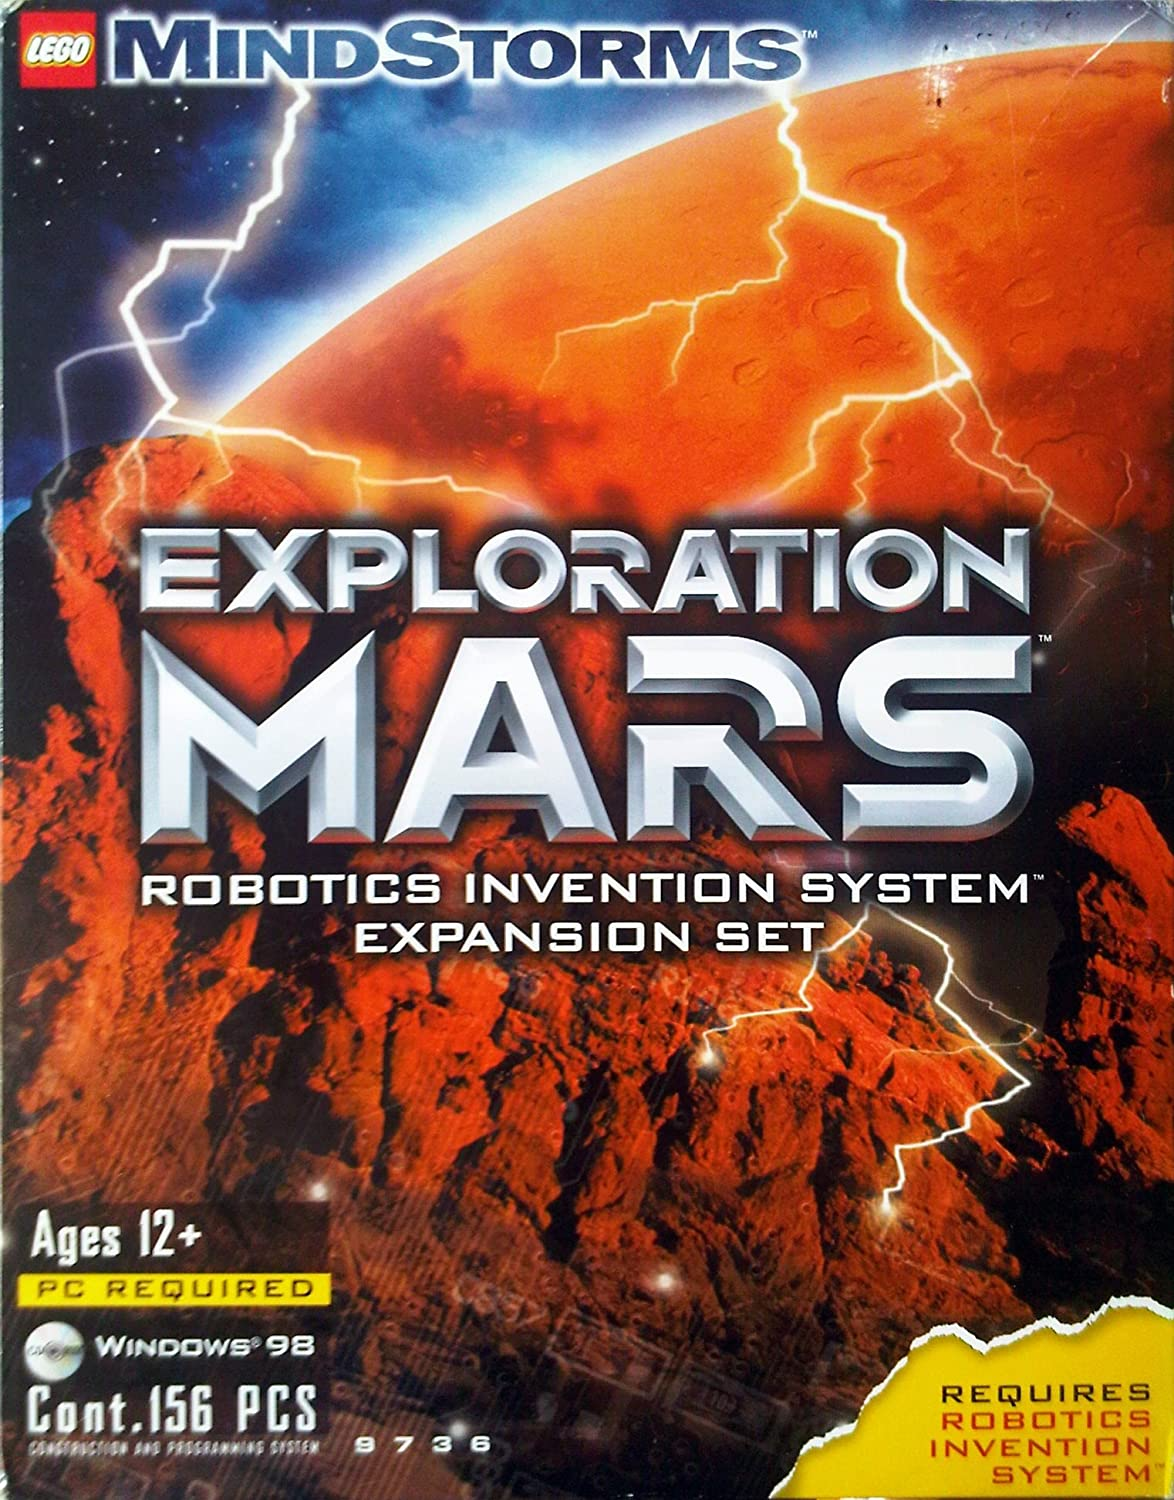 LEGO Mindstorms 9736 Exploration Mars Robotics Invention System Expansion Set